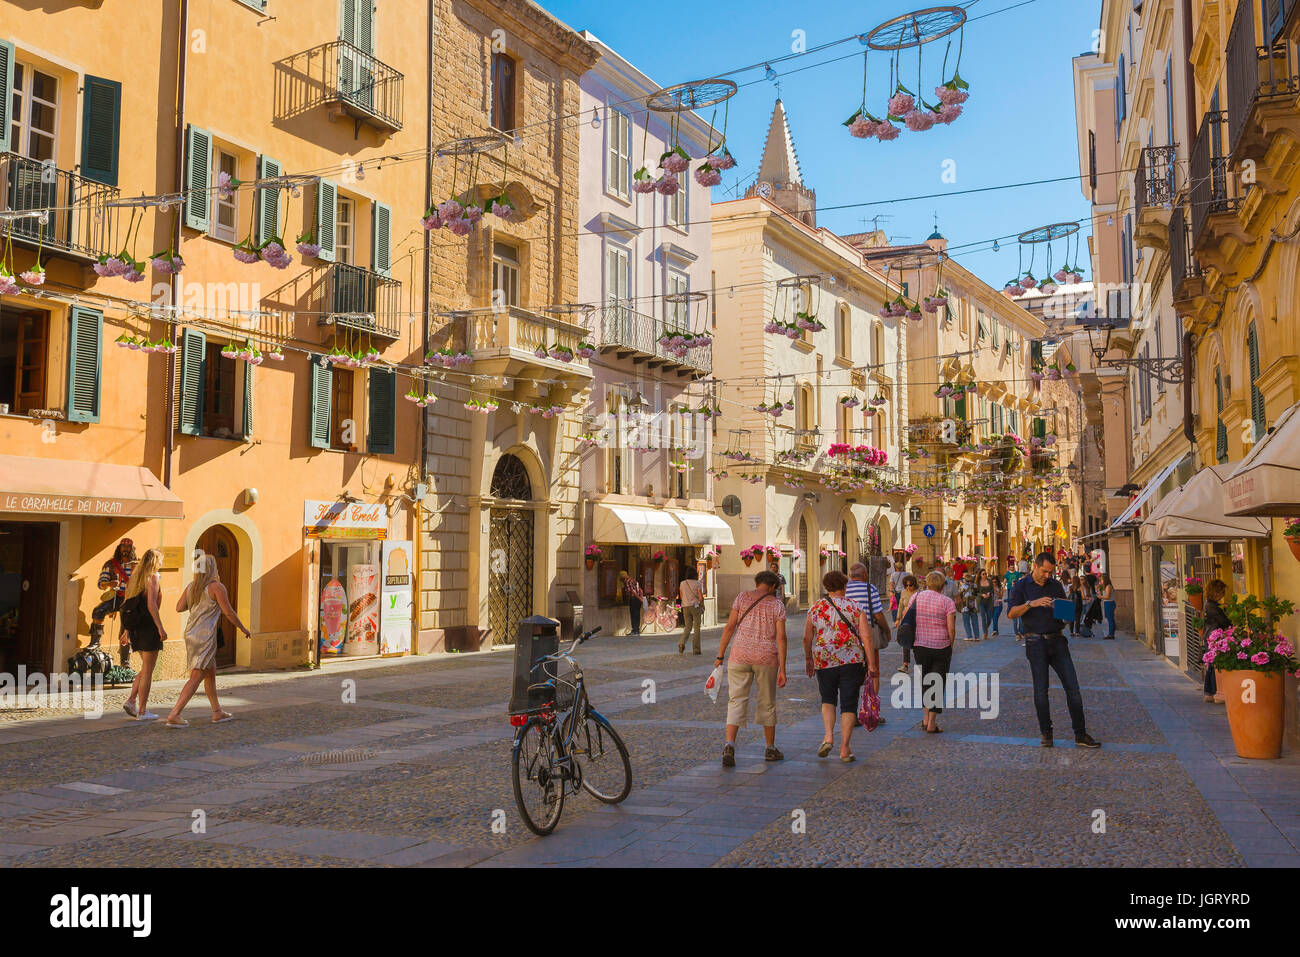 Alghero Piazza Civica, people stroll through the Piazza Civica in the historic old town quarter of Alghero, Sardinia. - Stock Image